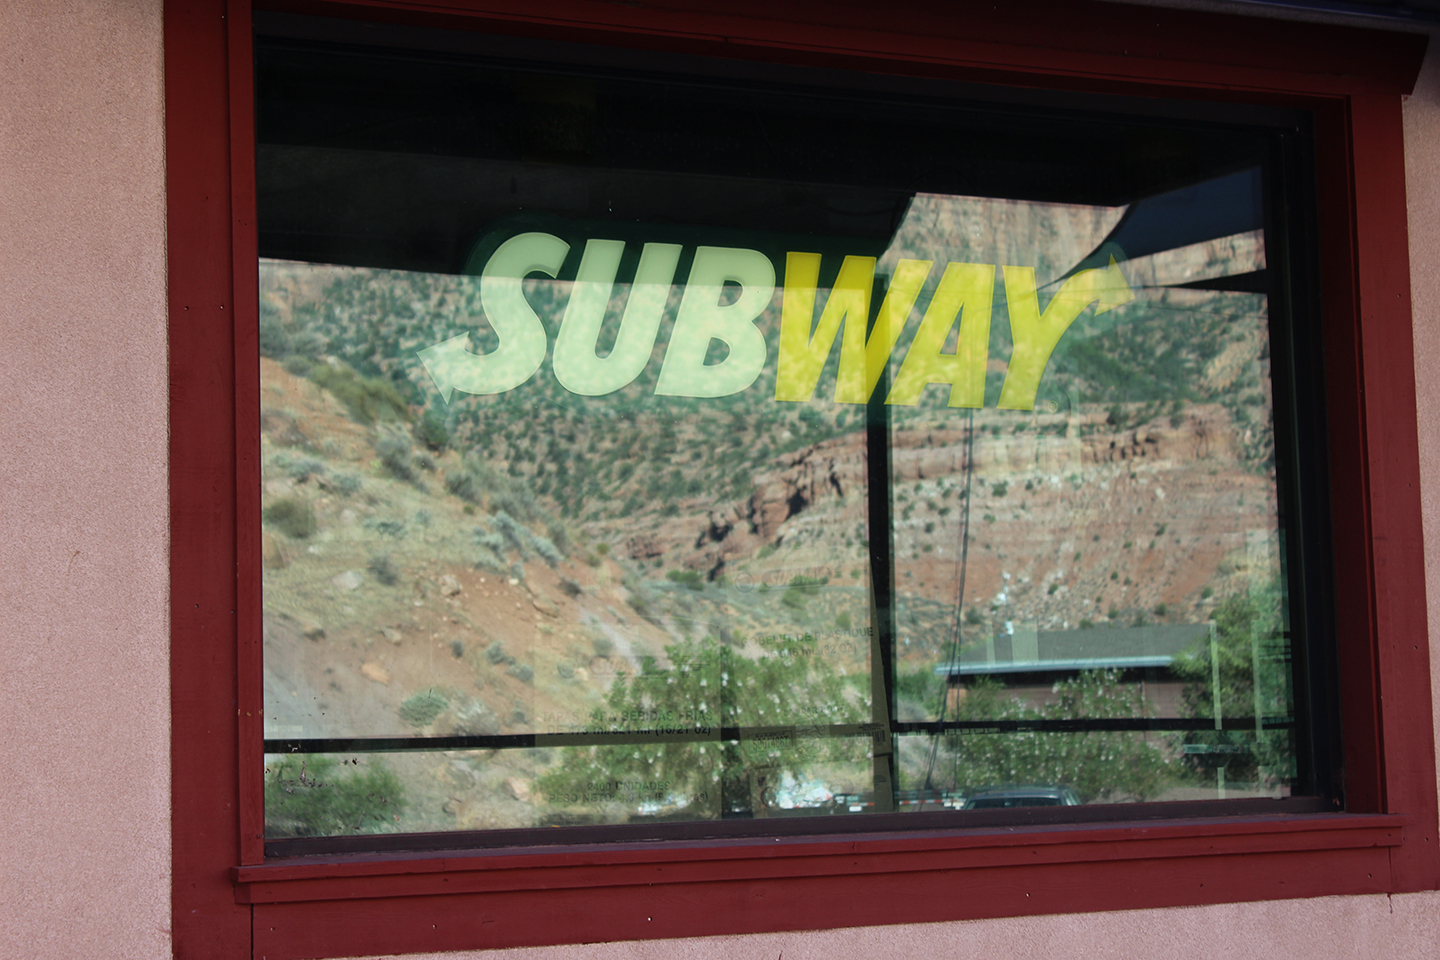 A Subway sign in the window of Izzy Poco, which now might be able to open, Springdale, Utah, July 17, 2015 | Photo by Nataly Burdick, St. George News